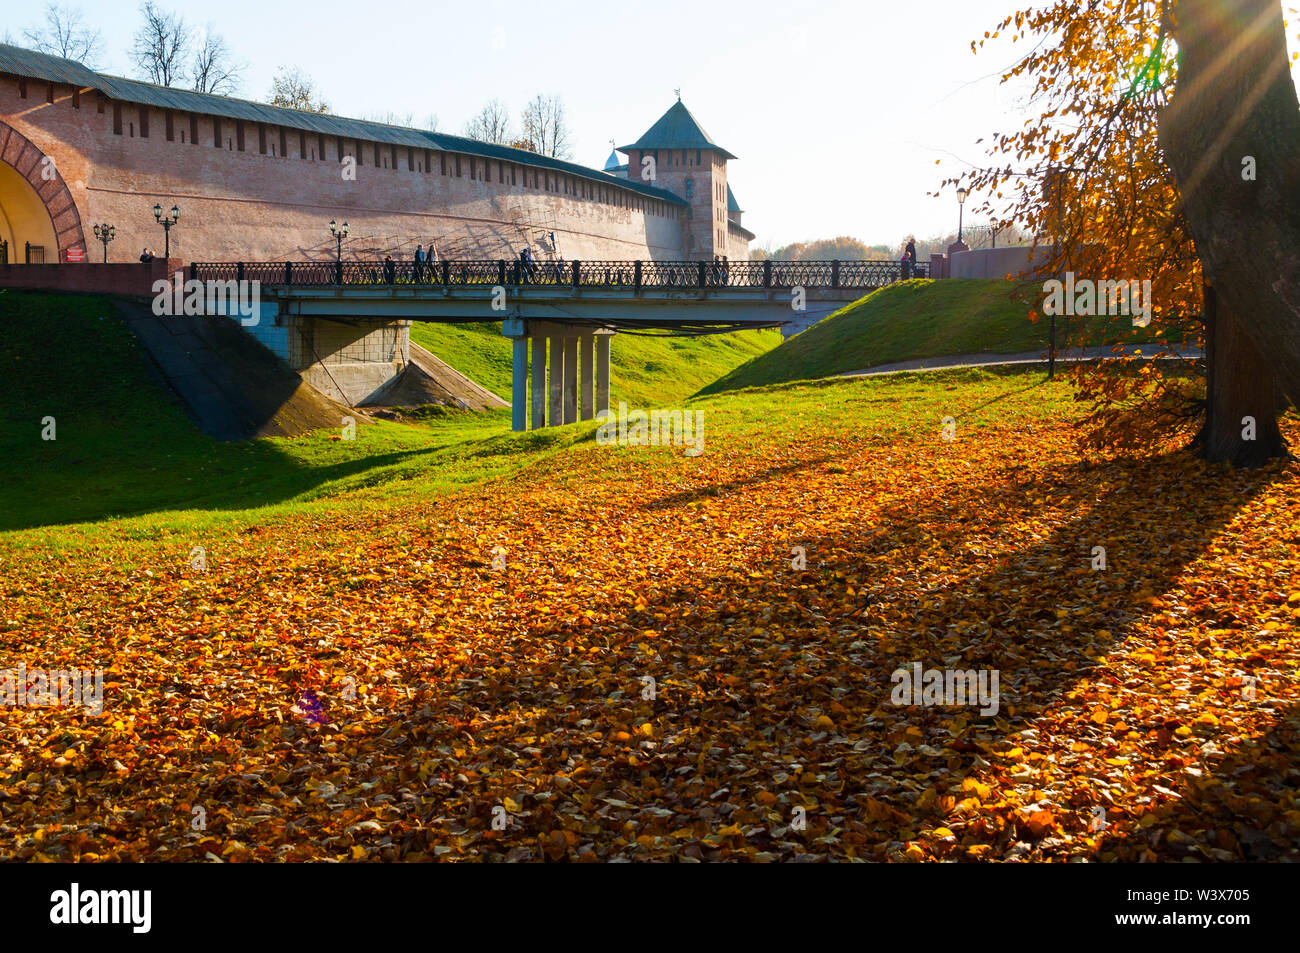 Veliky Novgorod, Russia. Towers of Veliky Novgorod Kremlin fortress in sunny autumn day. Focus at the fortress - Stock Image